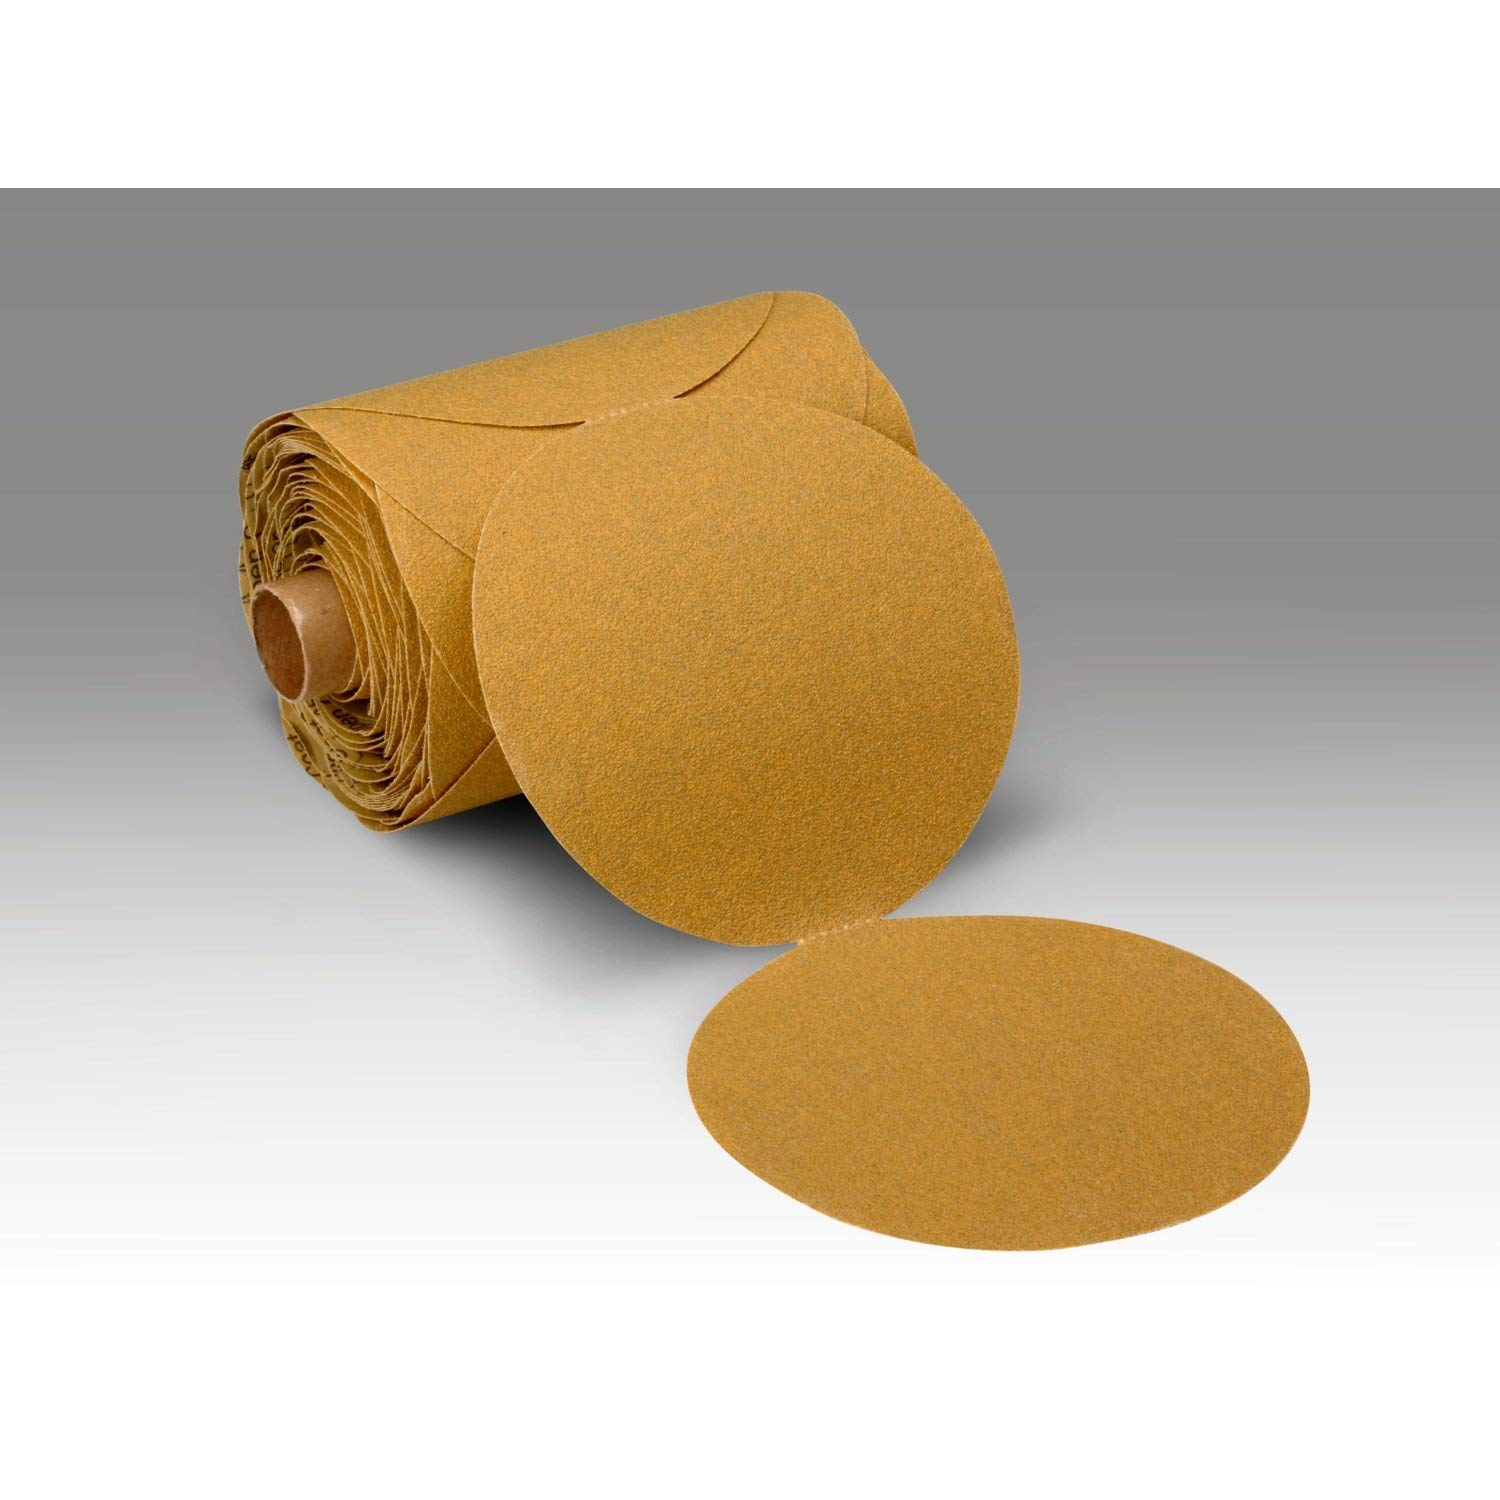 3M Stikit Paper Disc Roll 363I, 60 F-weight, 8 in x NH, Die 800L